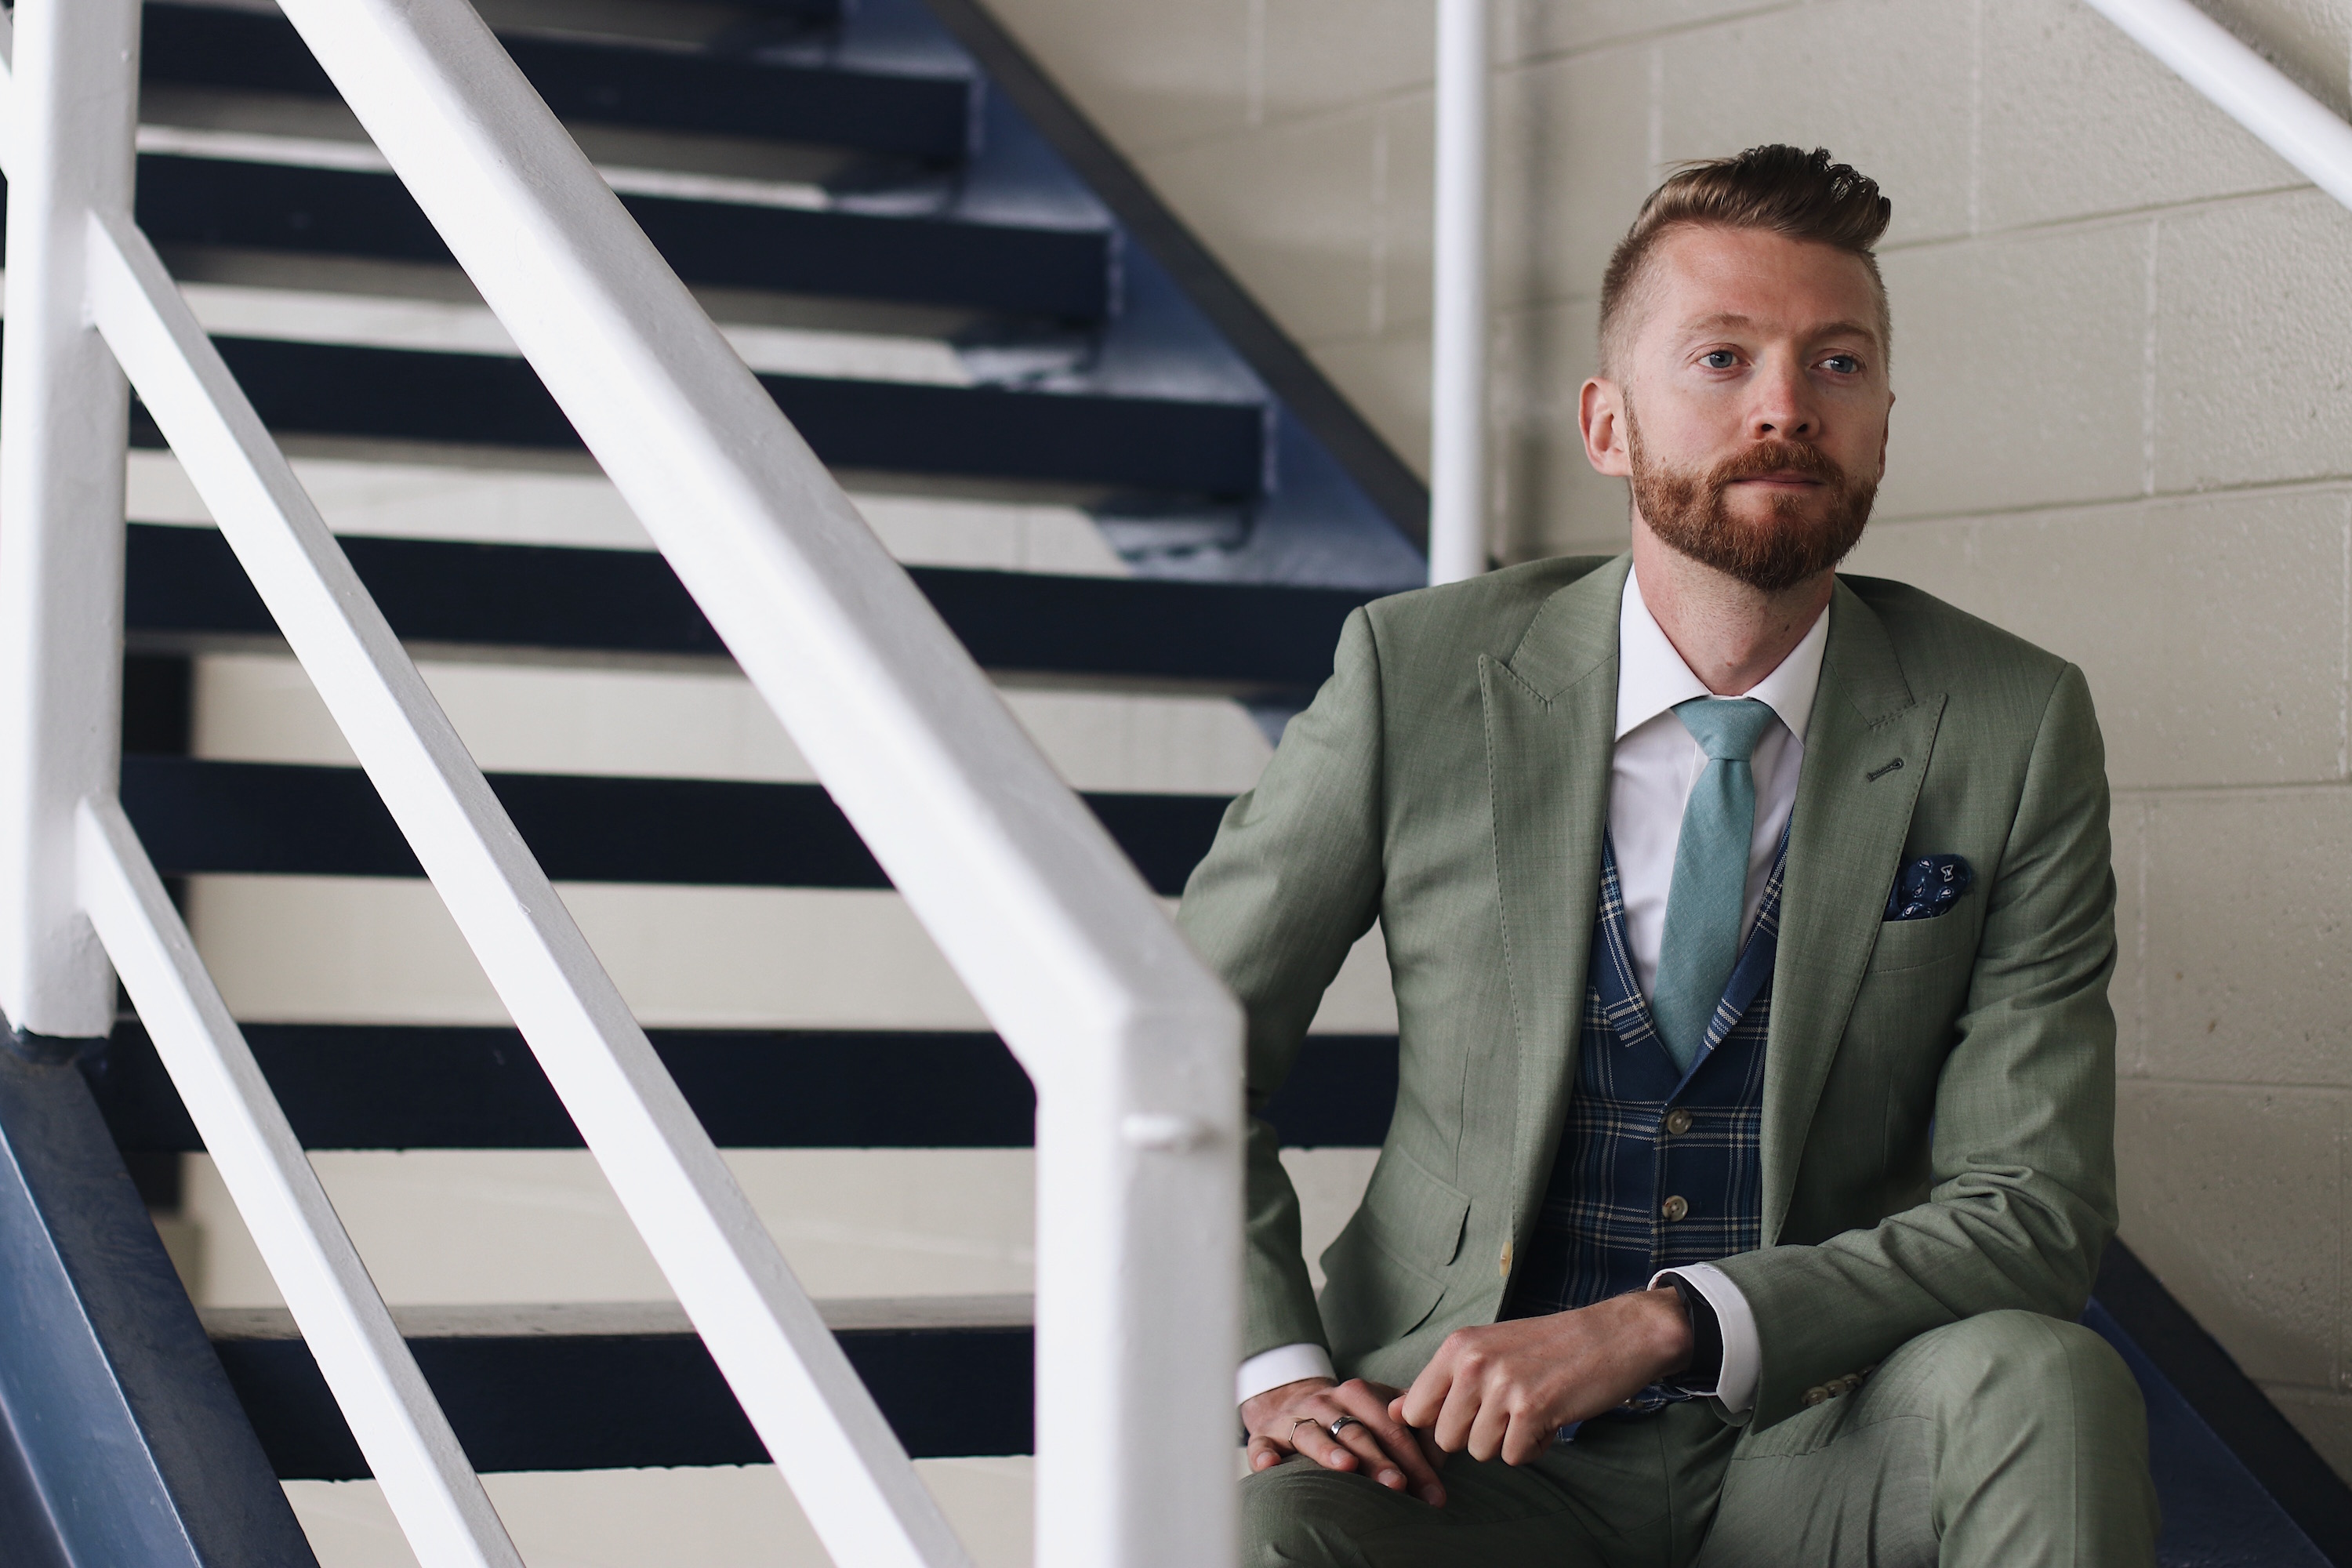 Jordan raises the style stakes in INDOCHINO's Sage Green Wool Stretch Suit and the Blue and Ivory Plaid Blazer.